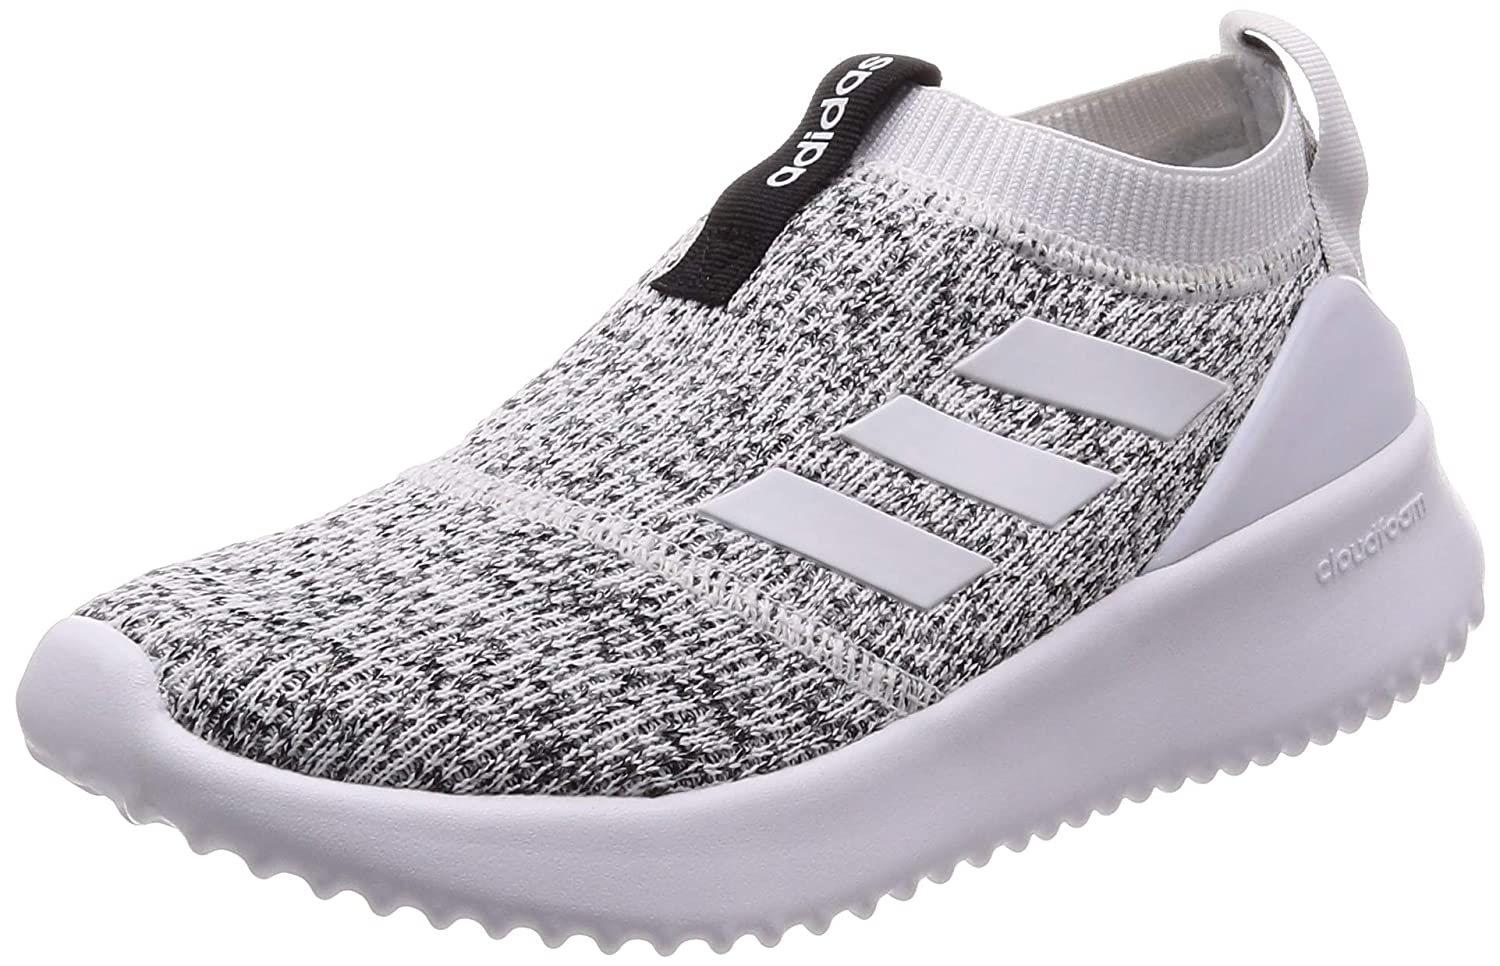 Blanc (blanc 000) adidas Ultimafusion, Ultimafusion, Chaussures de Fitness Femme  le style classique